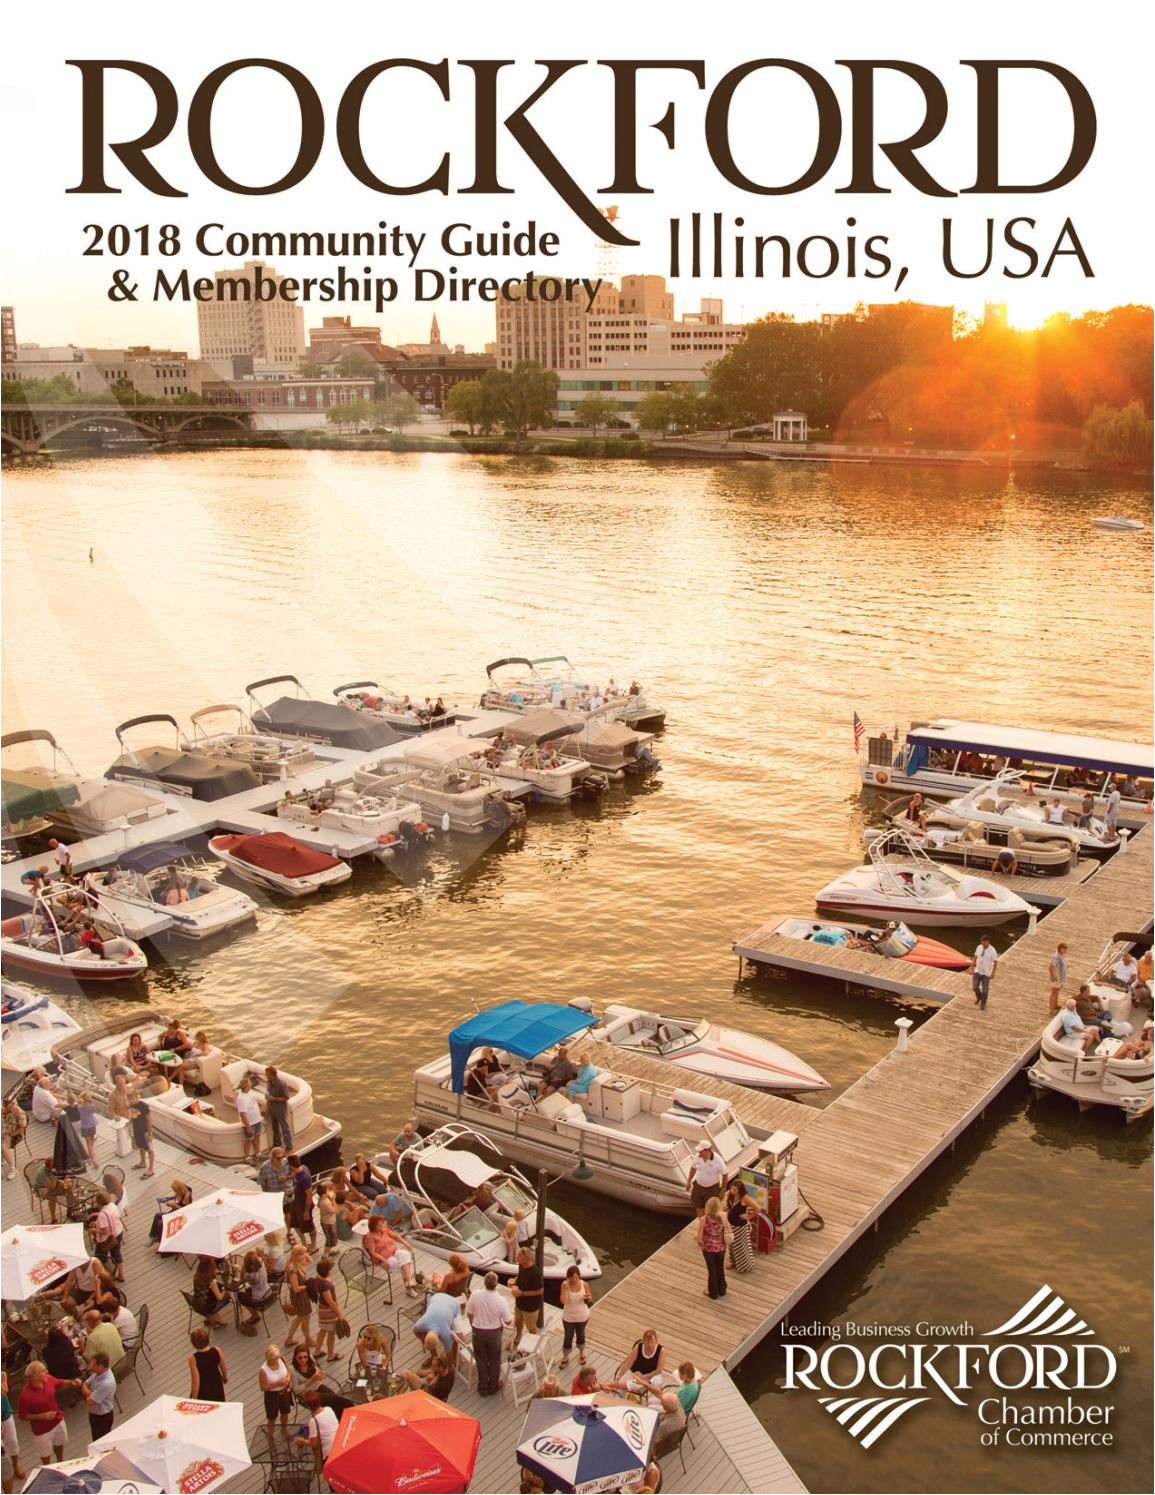 2018 rockford chamber community guide membership directory by rockford chamber of commerce issuu